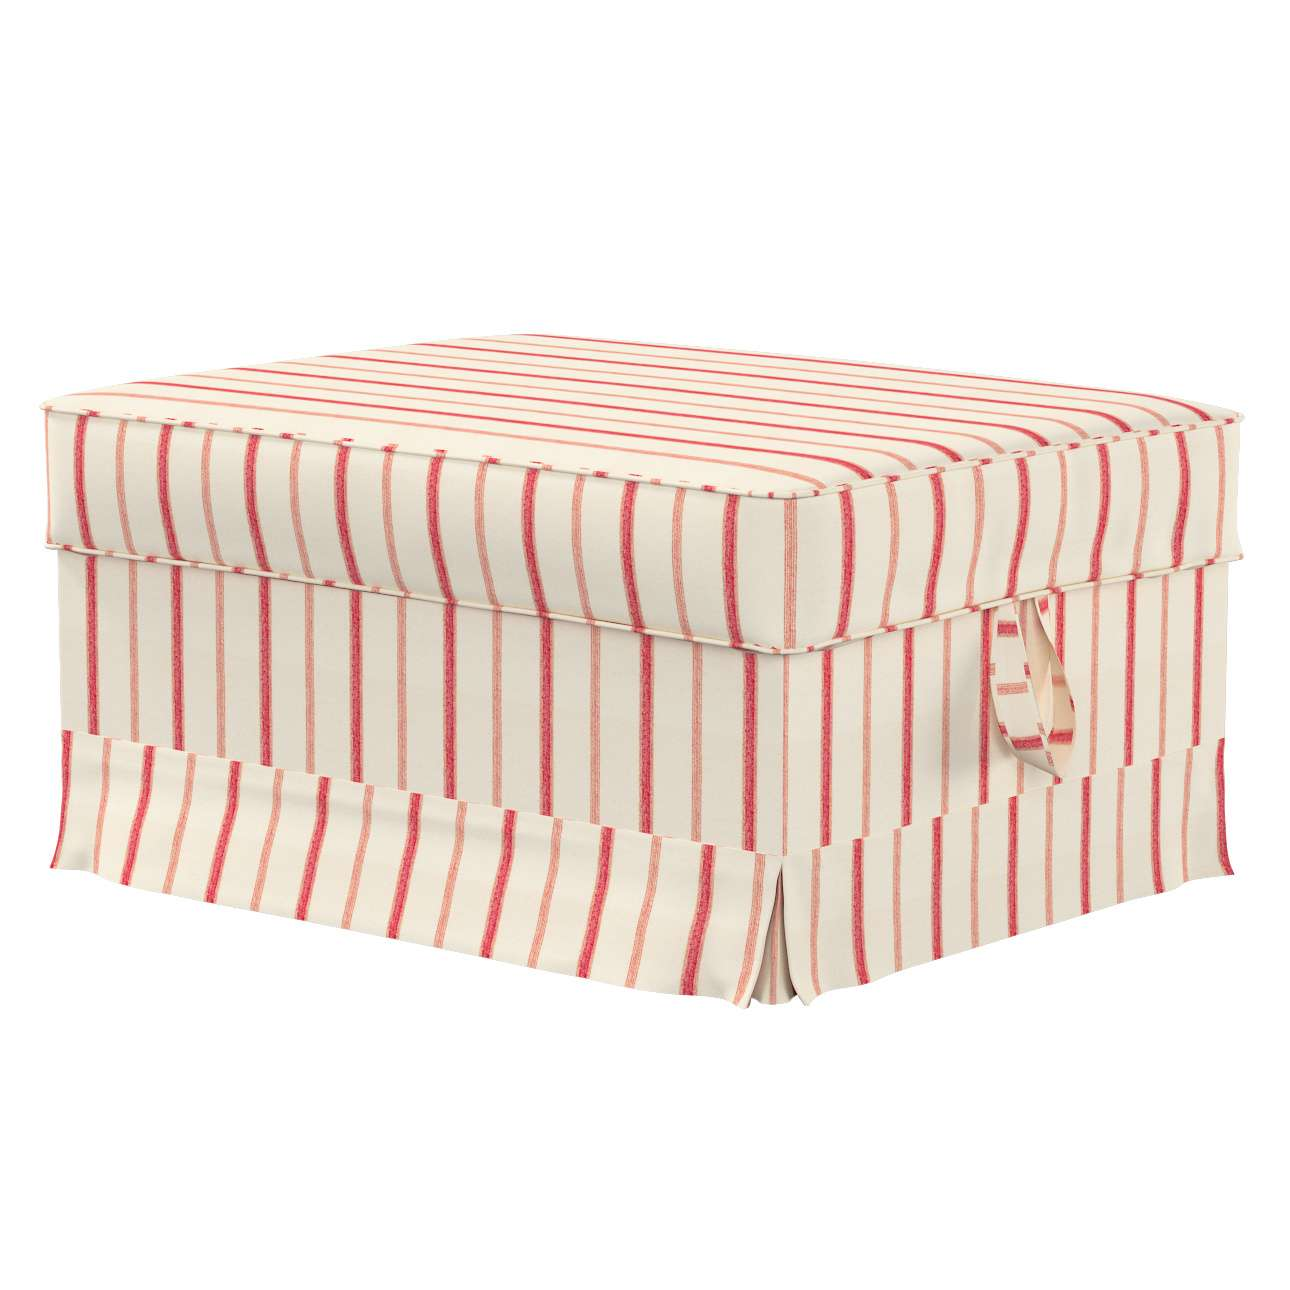 Ektorp Bromma footstool cover Ektorp Bromma footstool cover in collection Avinon, fabric: 129-15